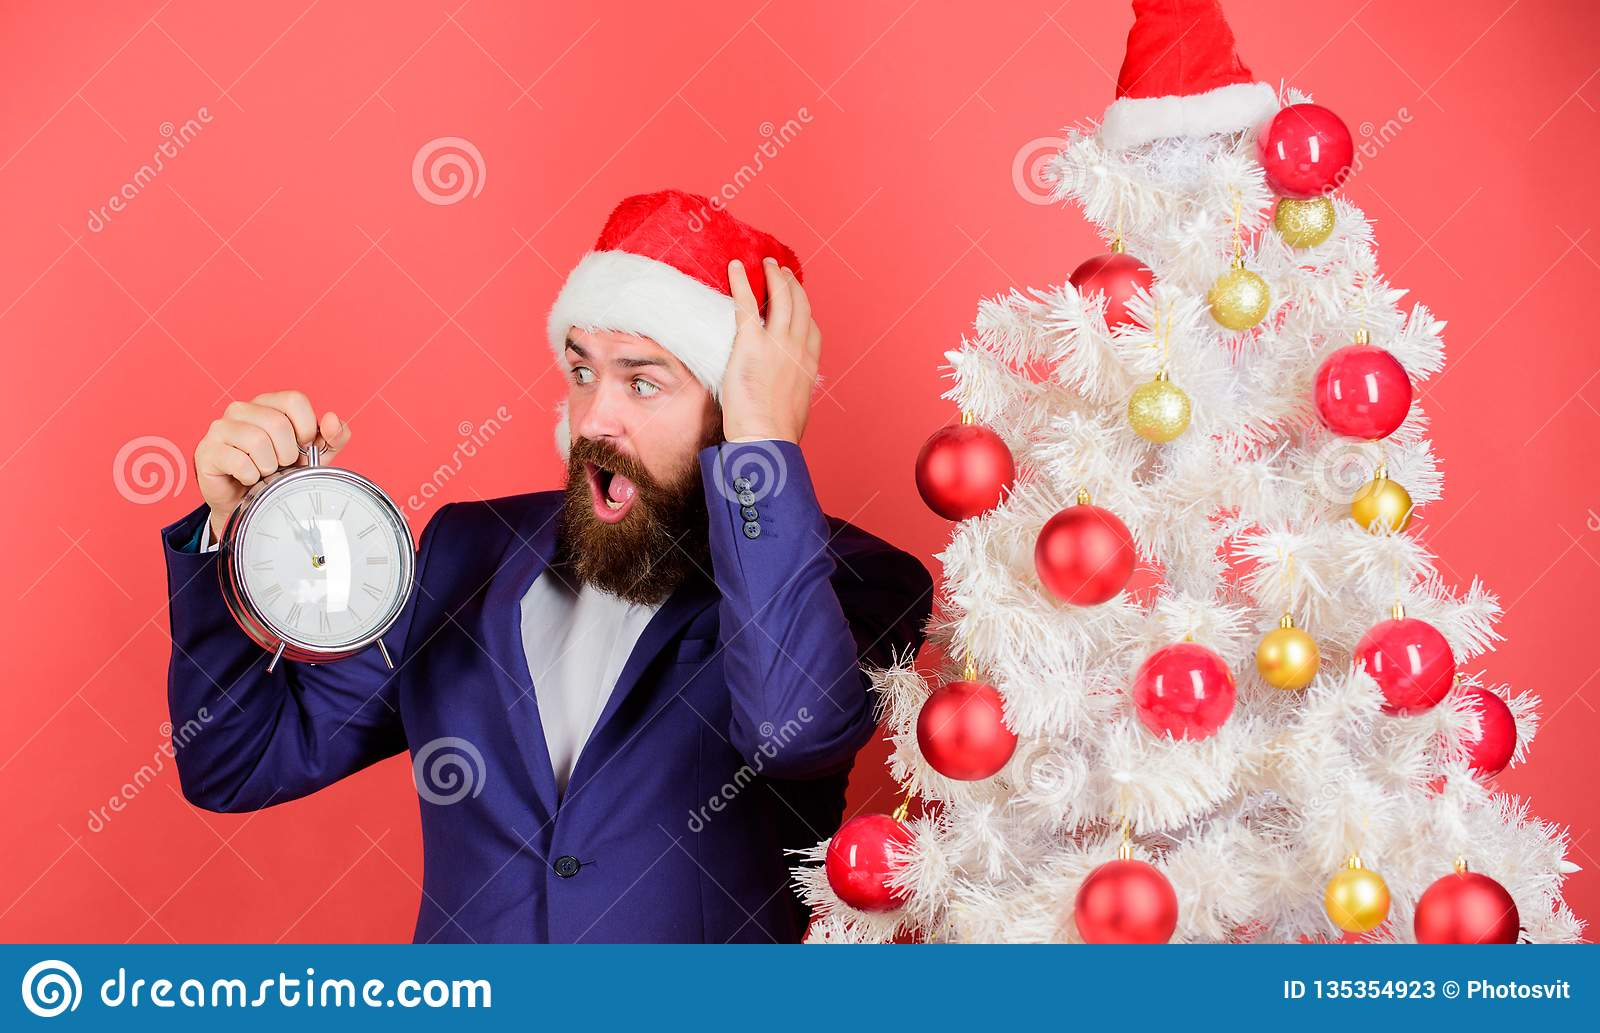 How Many Minutes Till Christmas.Last Minute Deals Counting Time Till Christmas How Much